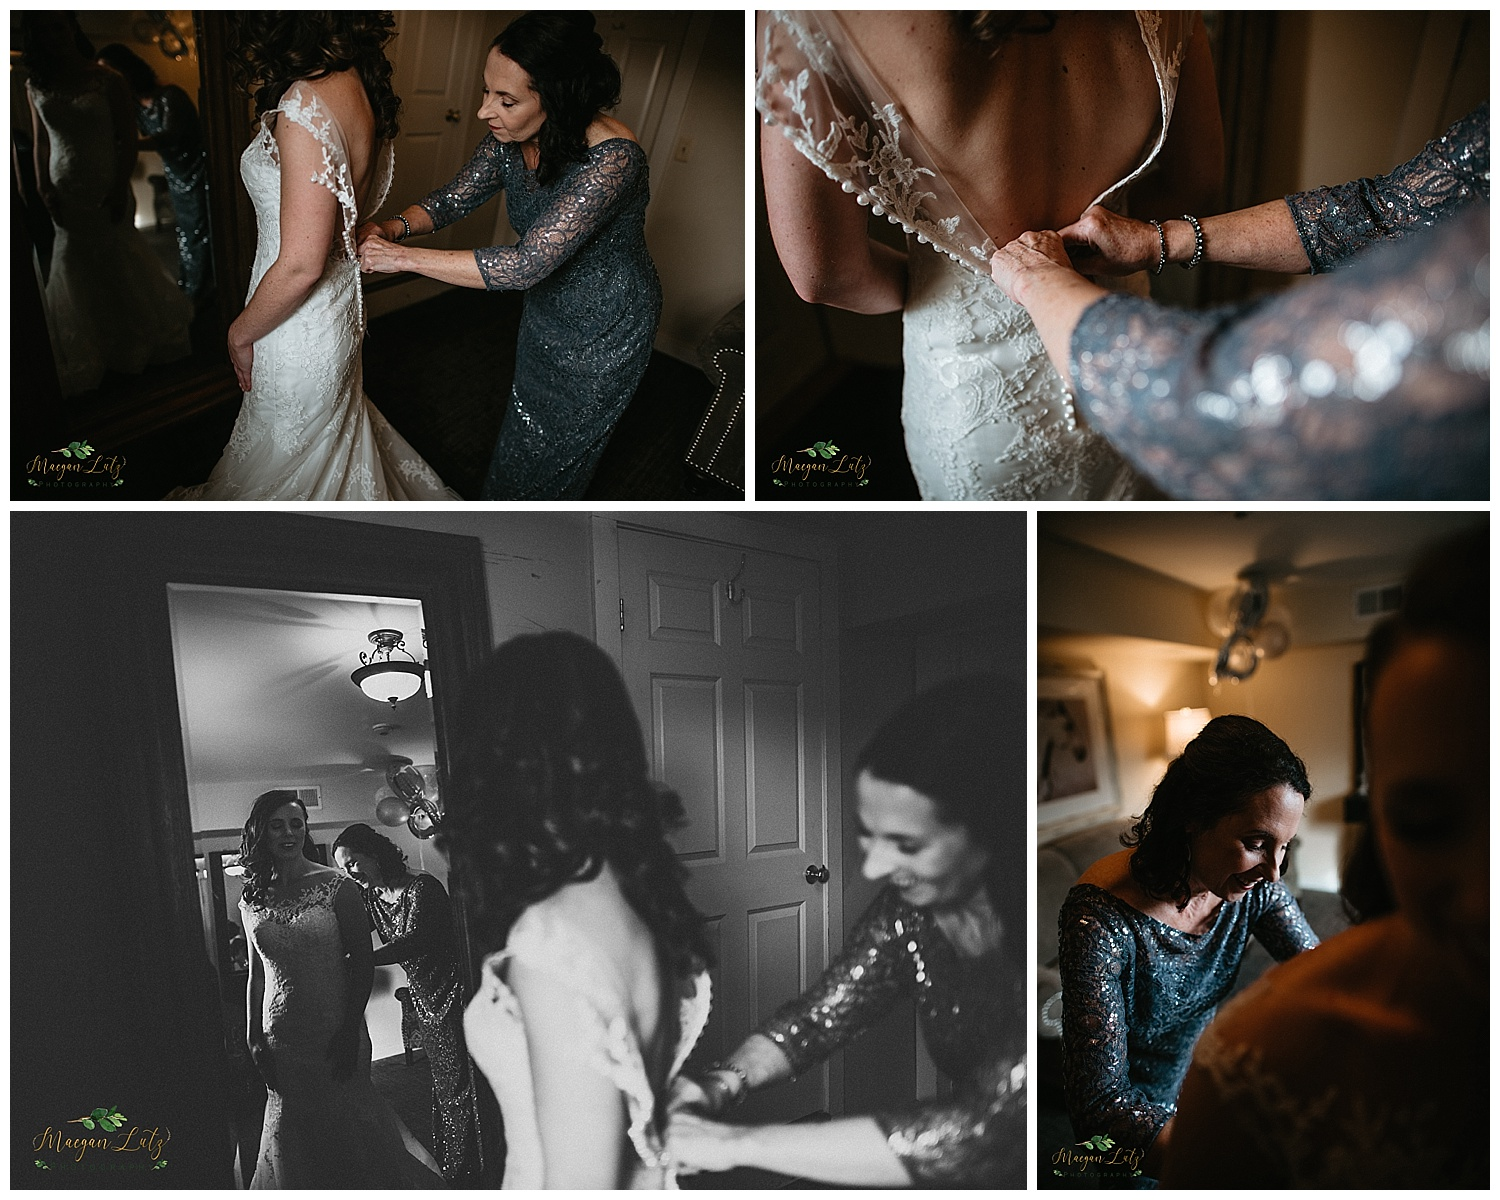 NEPA-wedding-photographer-at-Farmstead-Golf-and-country-club-LaFayette-Township-New-Jersey_0011.jpg